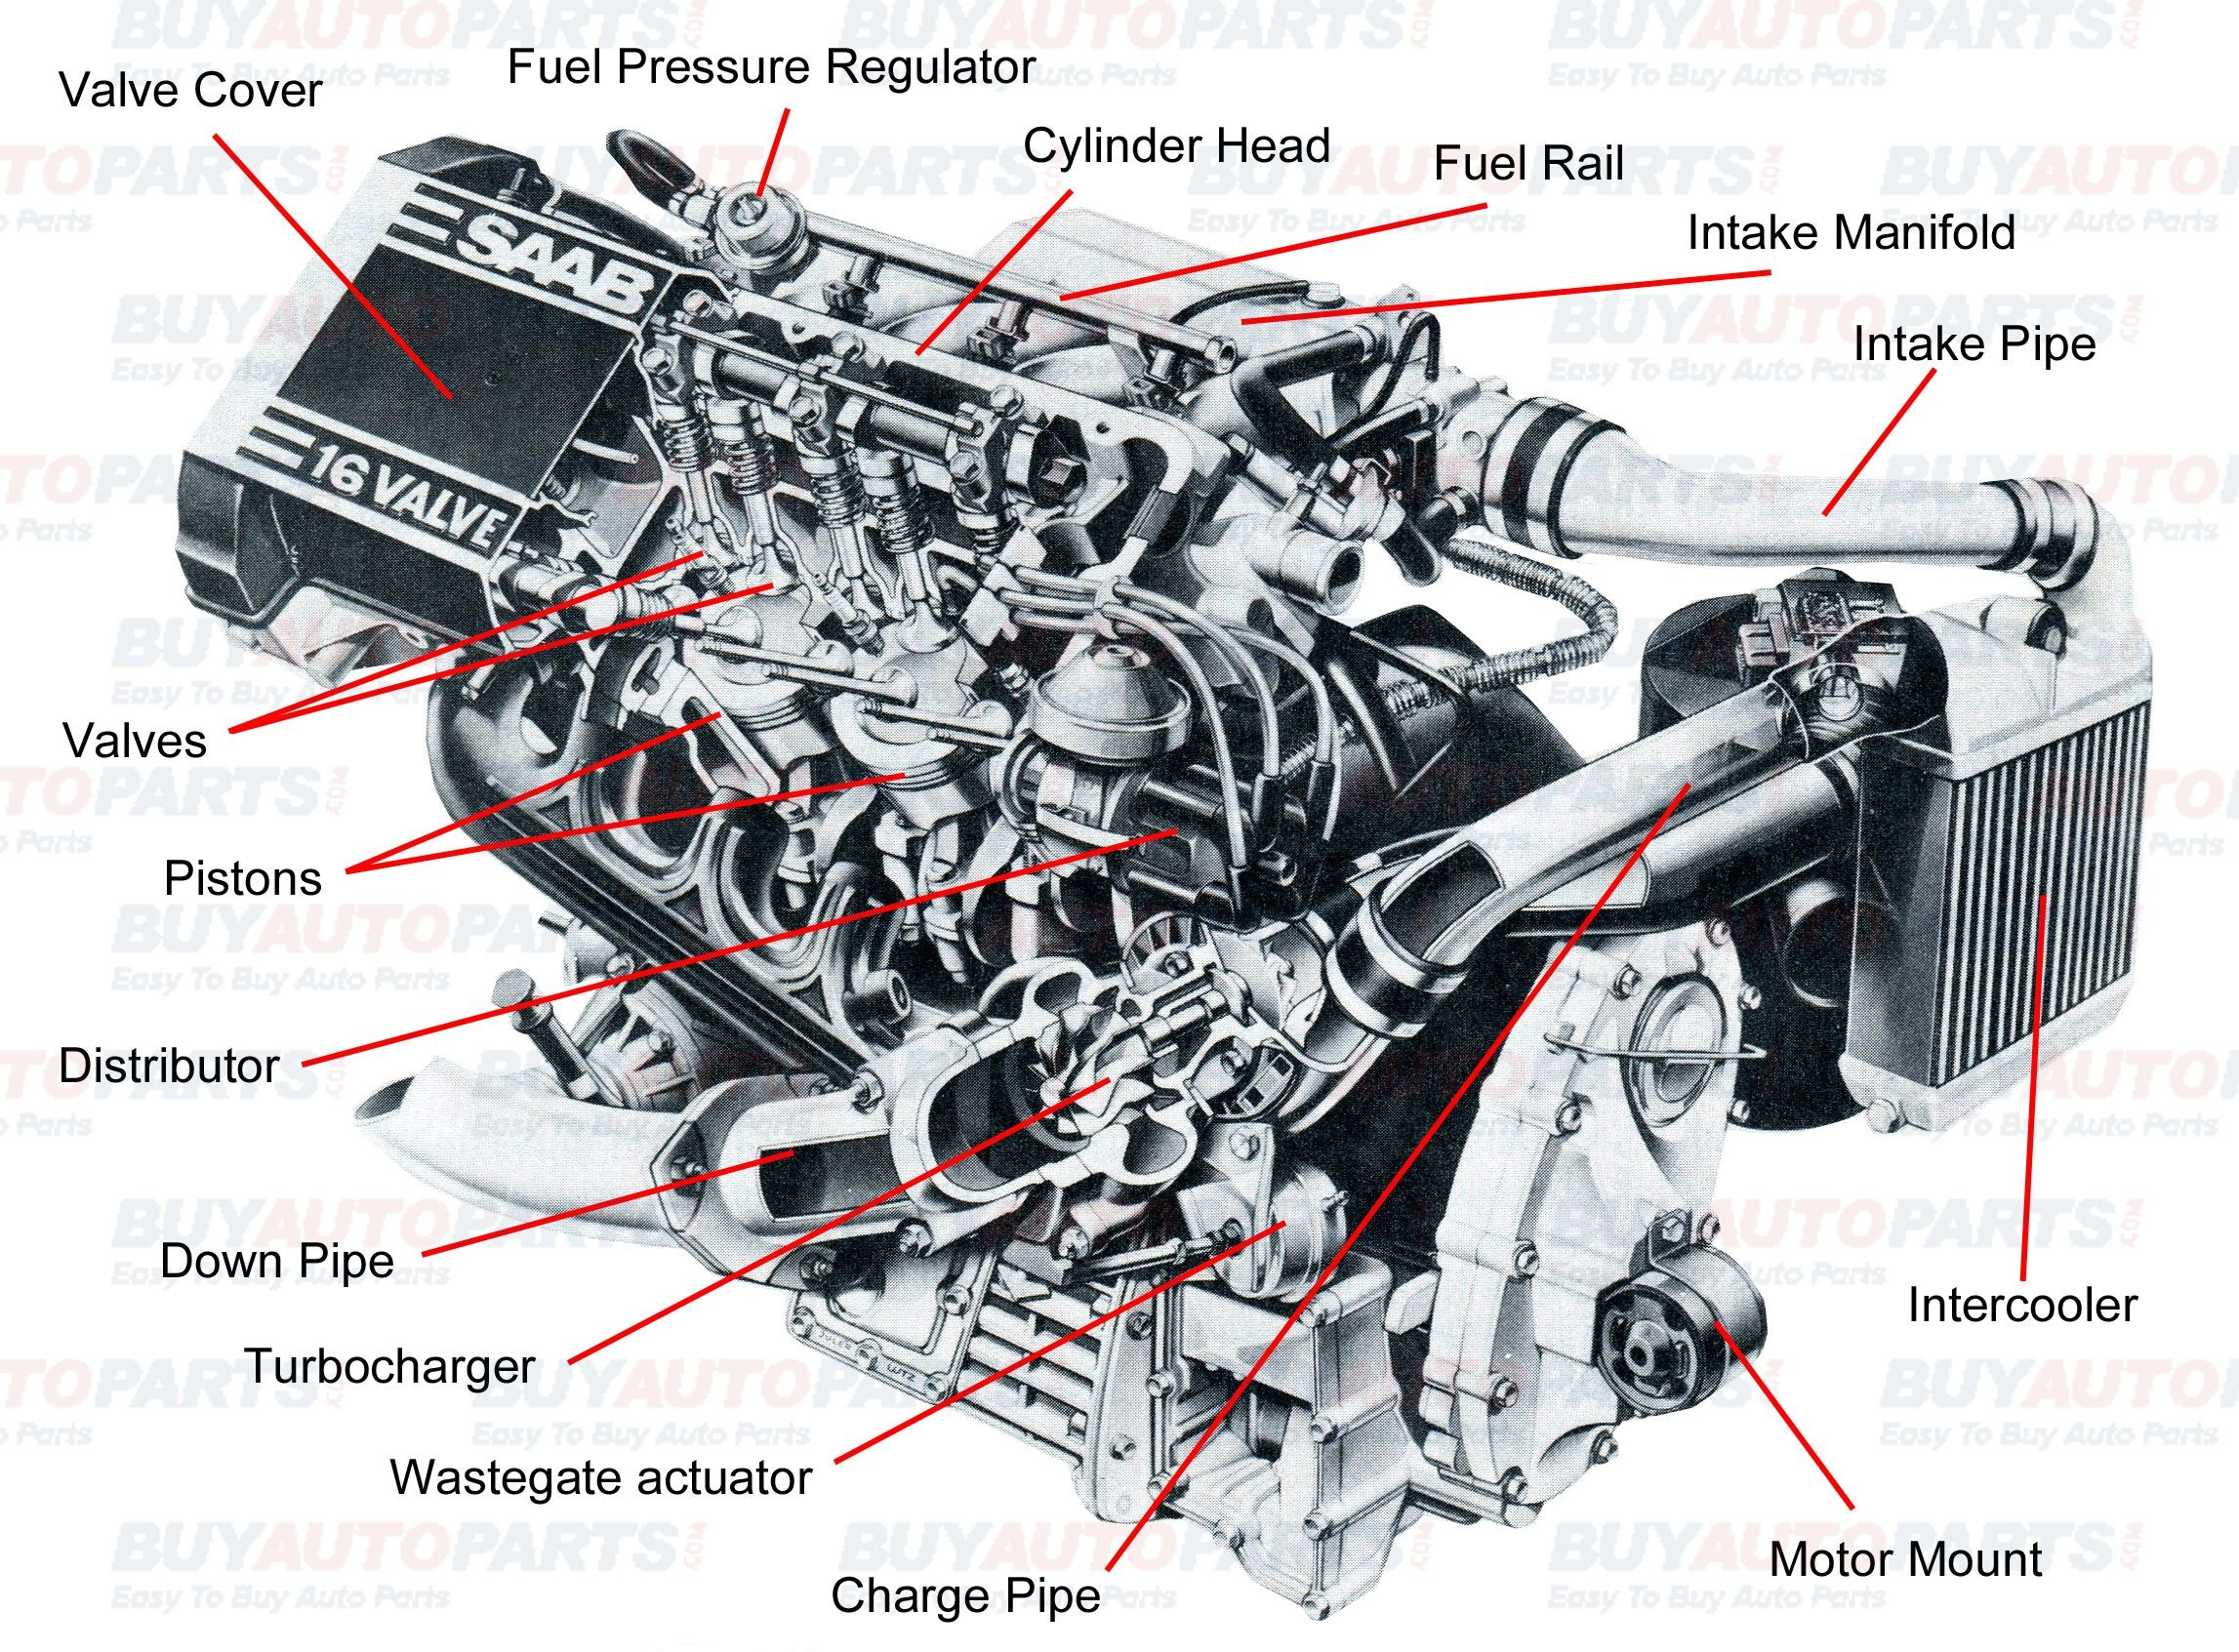 4 Stroke Engine Diagram Pin by Jimmiejanet Testellamwfz On What Does An Engine with Turbo Of 4 Stroke Engine Diagram